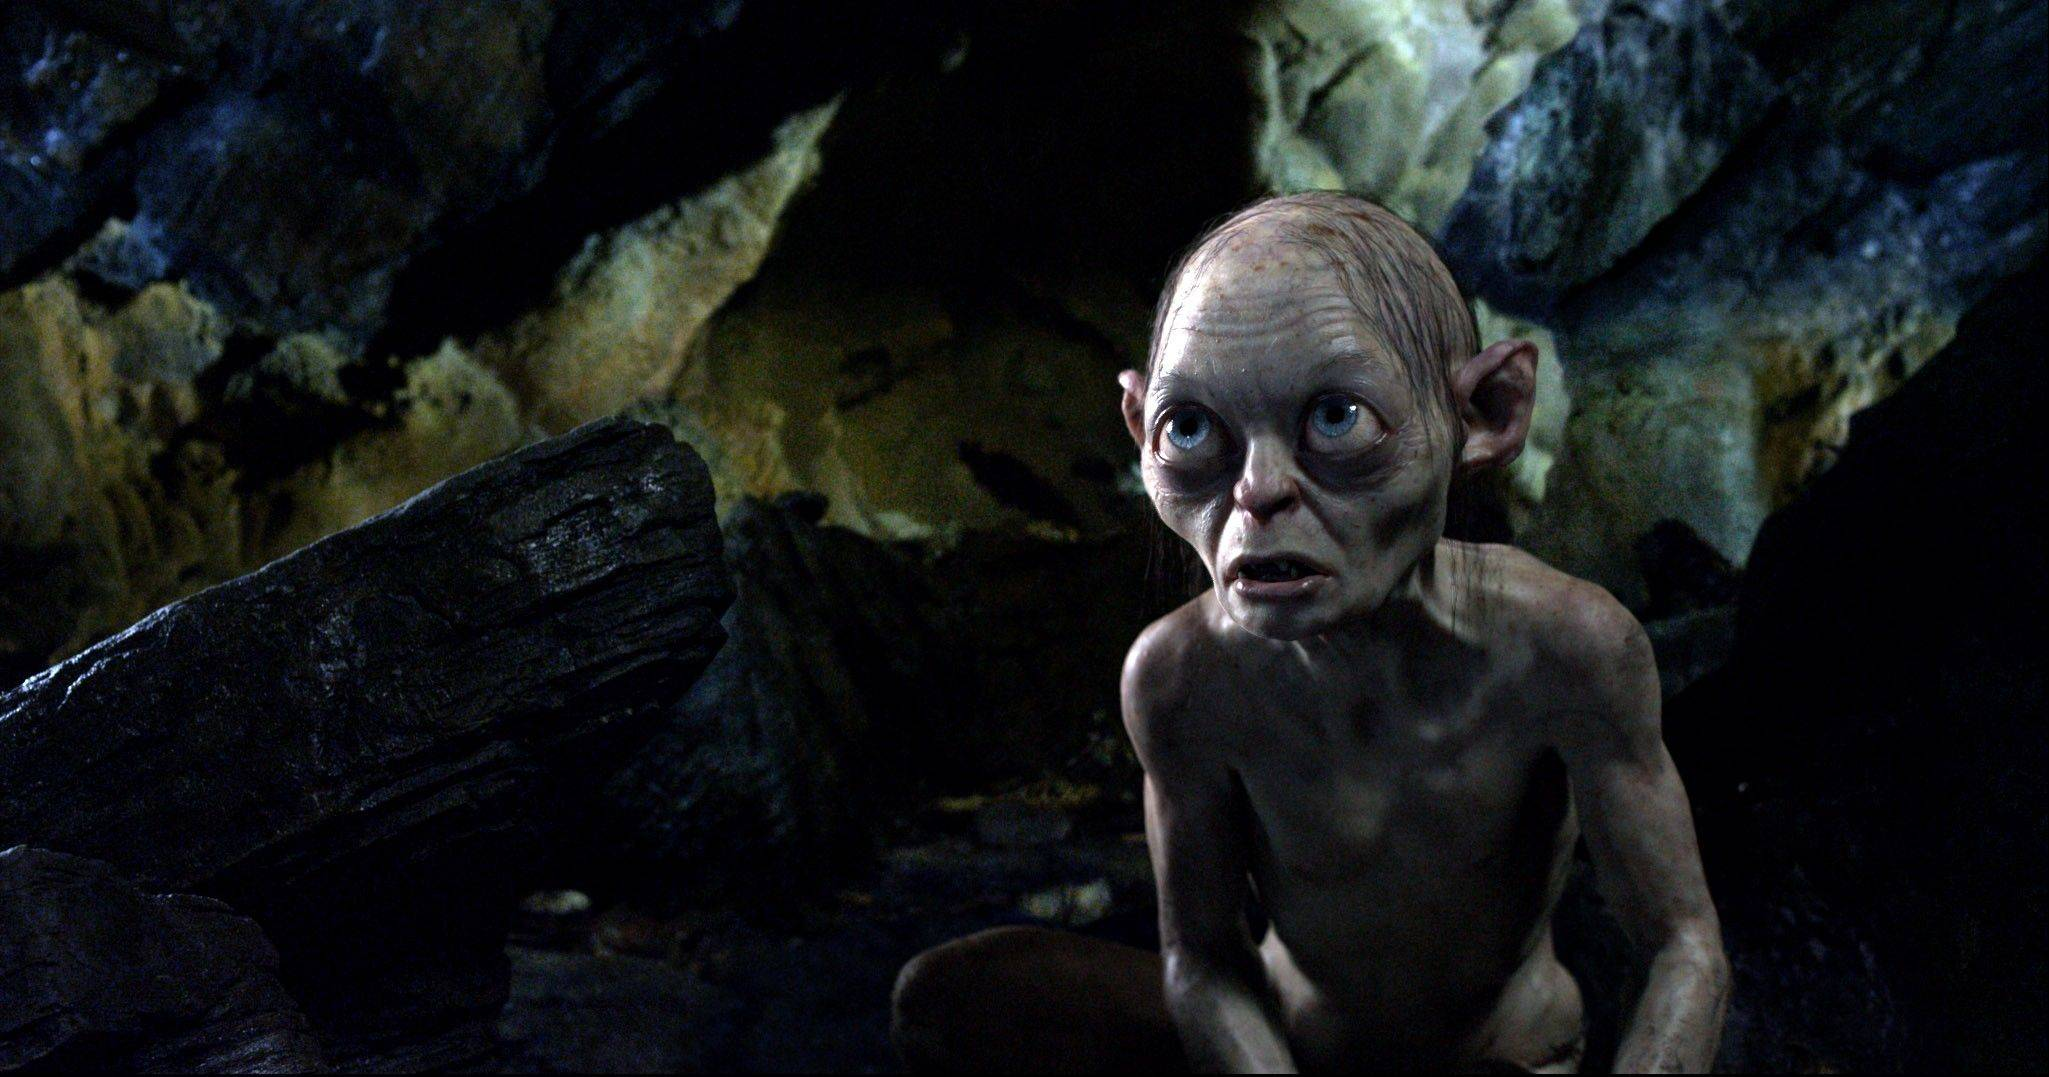 This publicity file photo released by Warner Bros., shows the character Gollum, voiced by Andy Serkis, in a scene from the fantasy adventure �The Hobbit: An Unexpected Journey.�